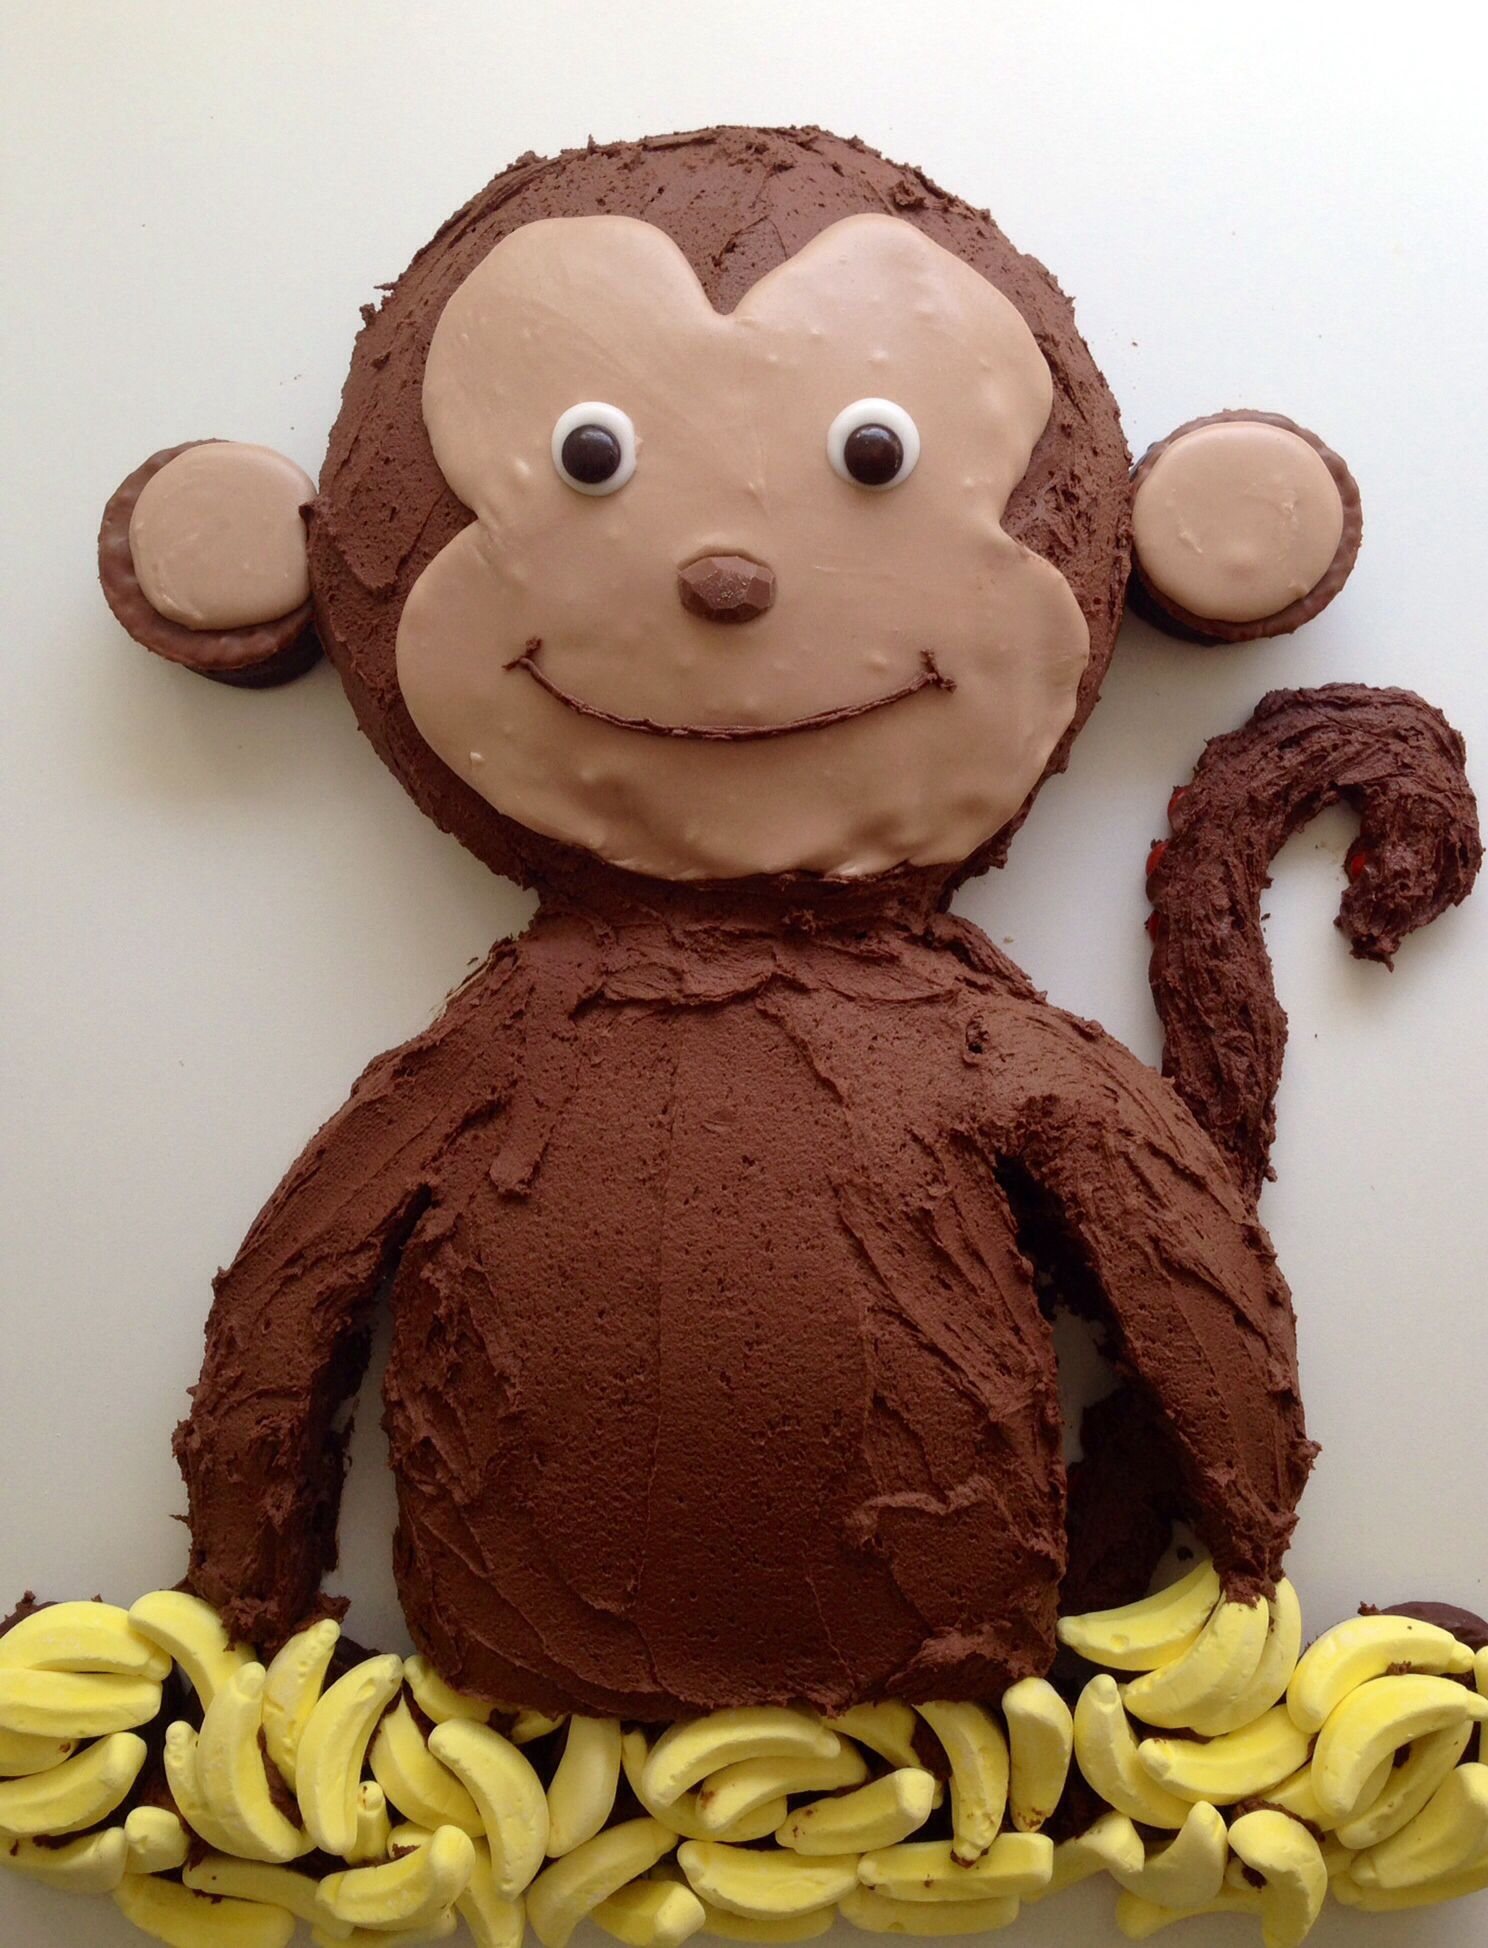 Astounding Monkey Birthday Cake With Images Monkey Birthday Cakes Funny Birthday Cards Online Alyptdamsfinfo